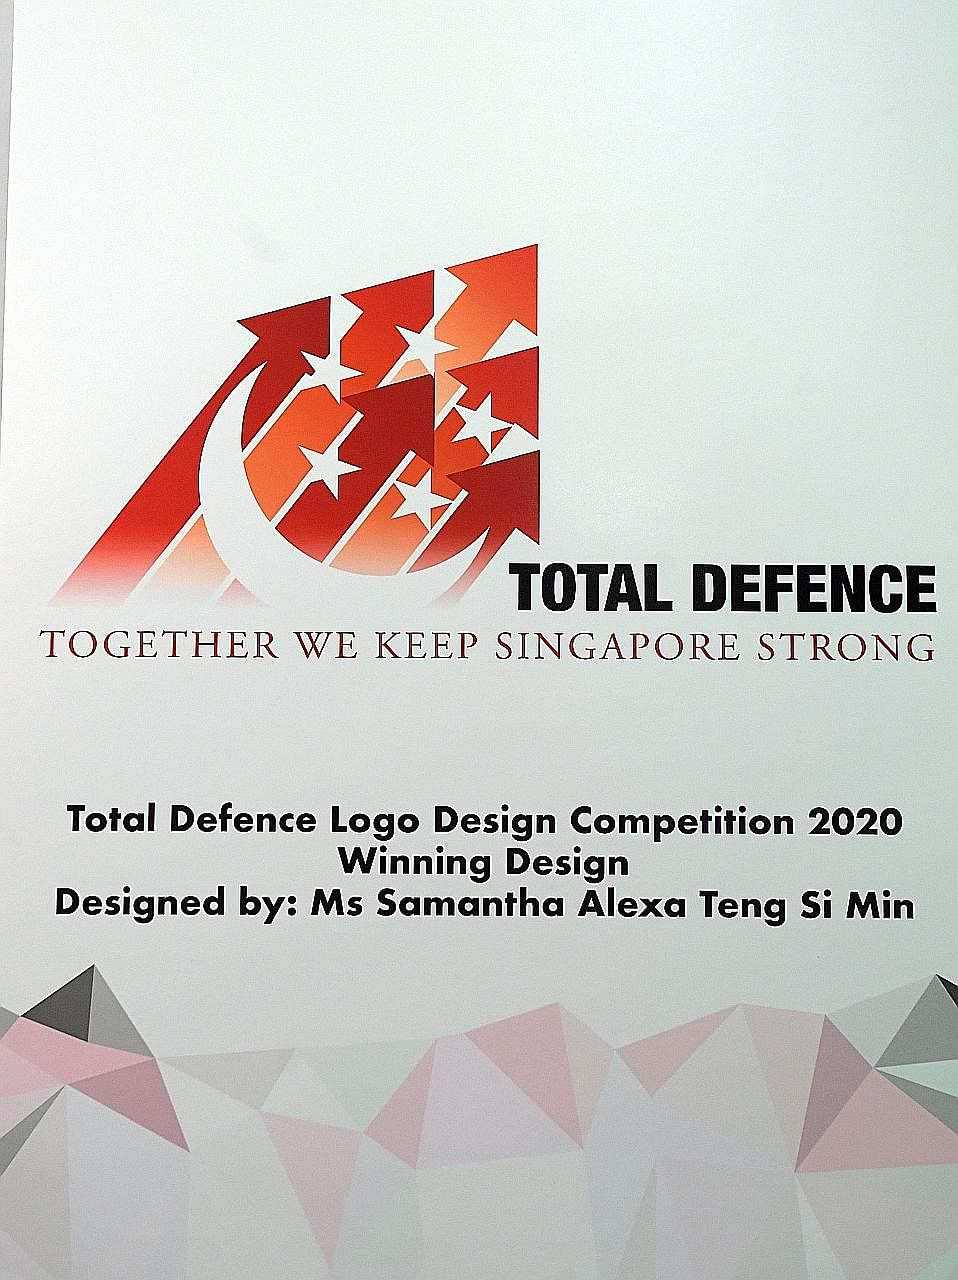 Minister for Trade and Industry Chan Chun Sing chatting with Ms Samantha Alexa Teng (right), the winner of the Total Defence Logo Design Competition 2020 (below). Beside him is Colonel Jerica Goh, director of Nexus, the Ministry of Defence's central